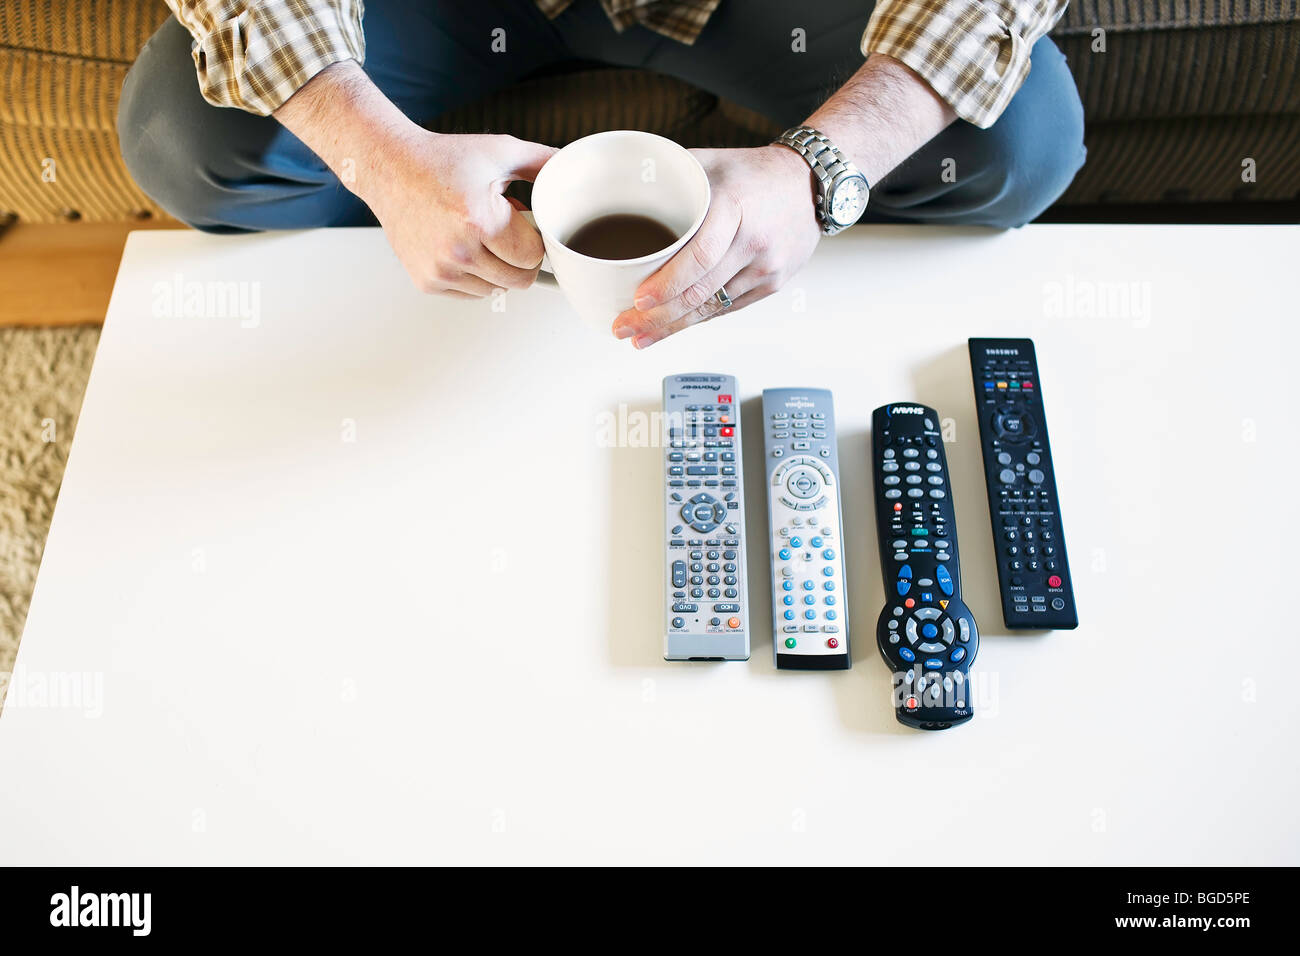 Man sitting on couch, holding coffee, with TV remote controls lined up on table. - Stock Image